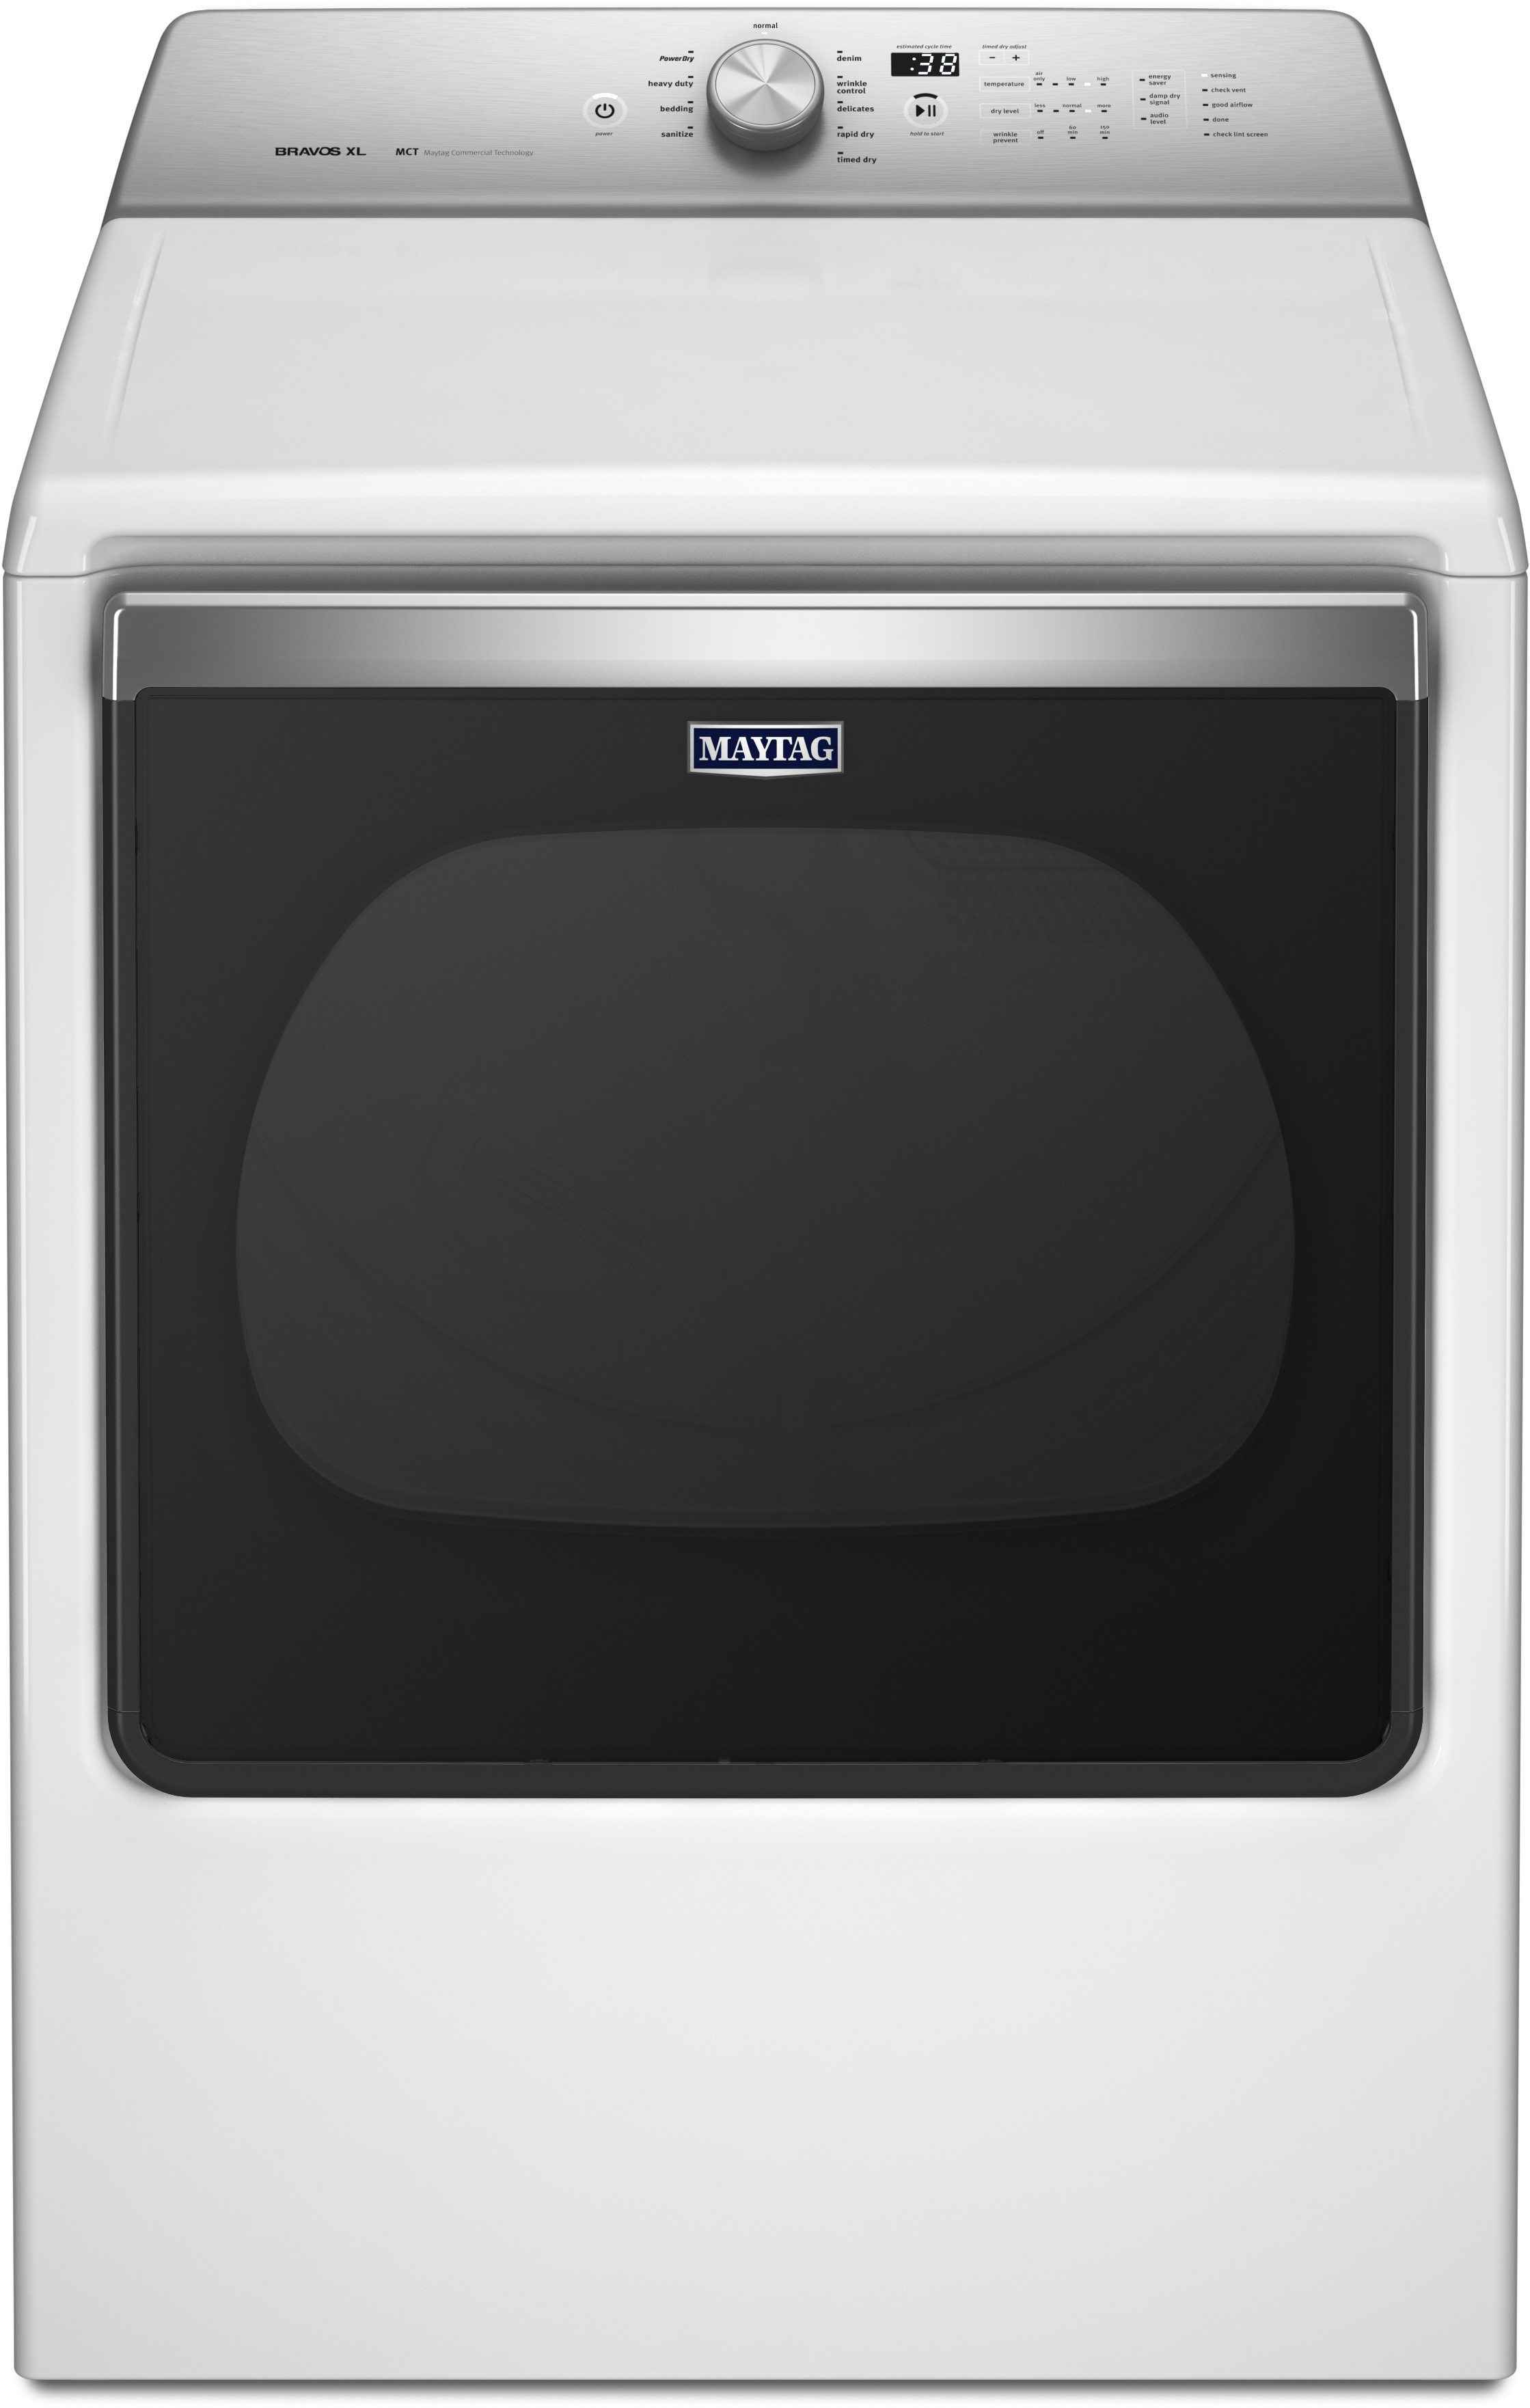 Maytag MEDB835DW 29 Inch Electric Dryer with Heavy Duty Sanitize